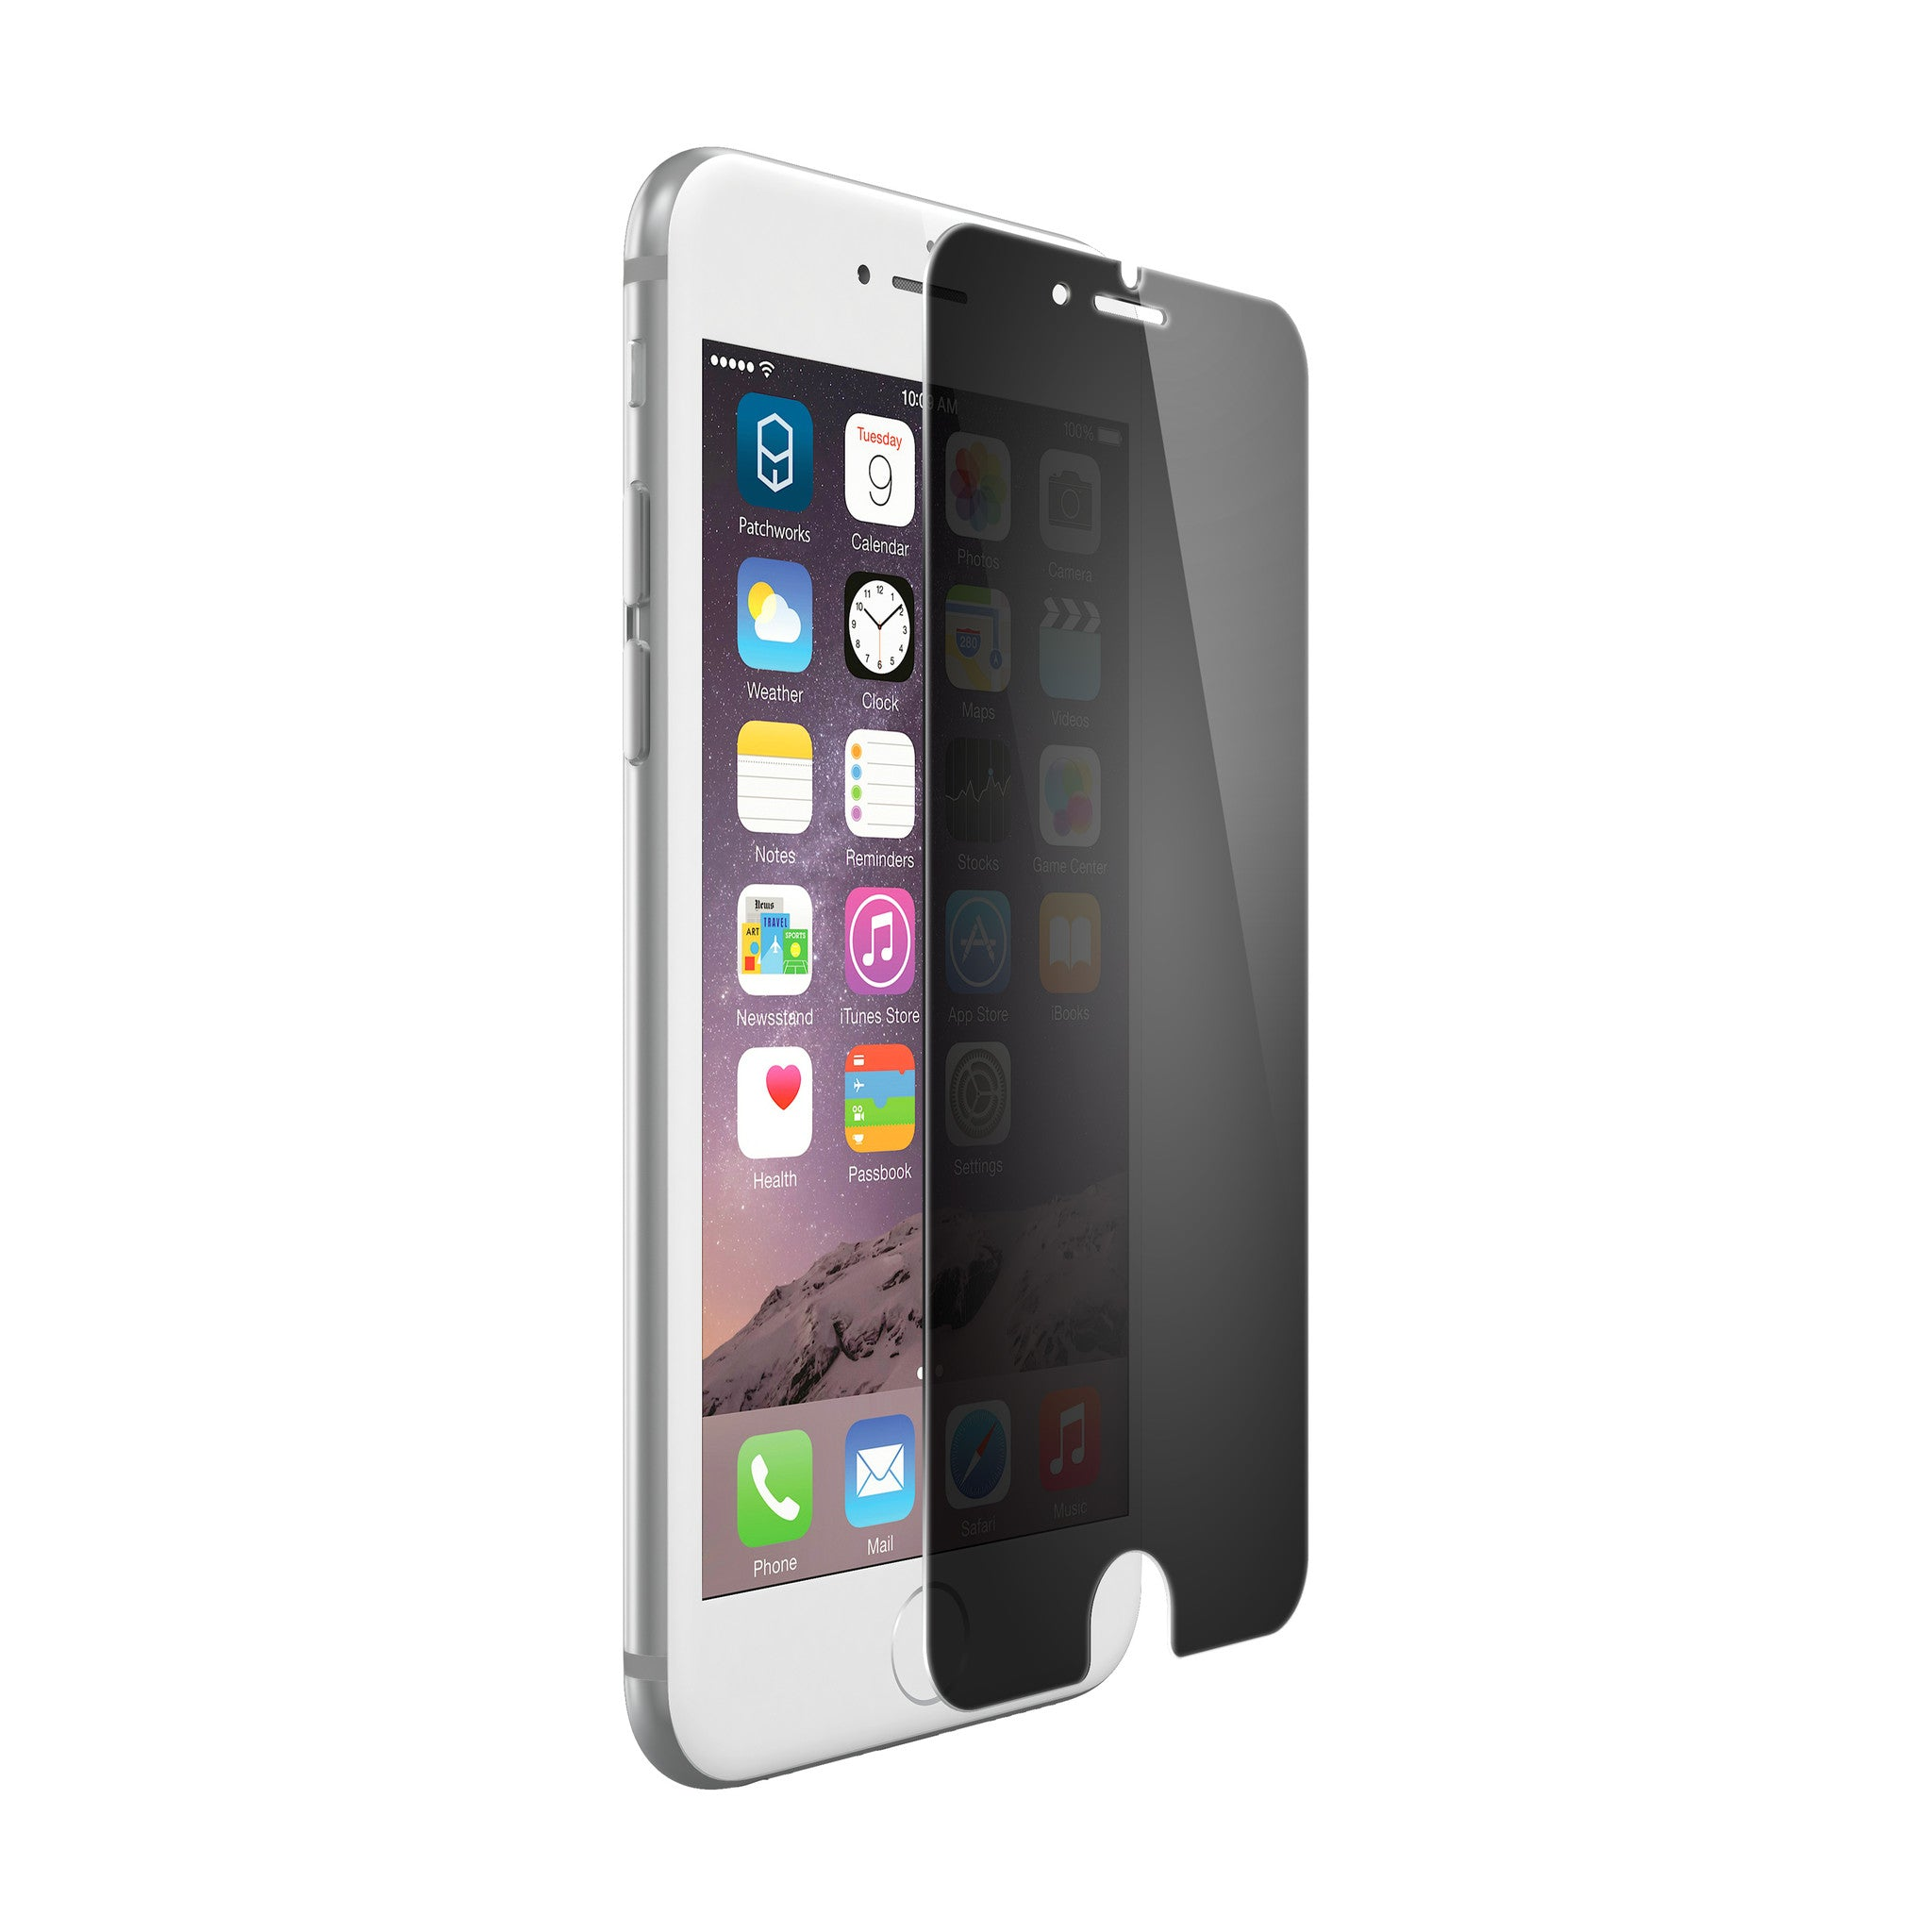 ITG PRO Privacy Tempered Glass for iPhone 6s Plus & 6 Plus - Patchworks Global Inc - 1